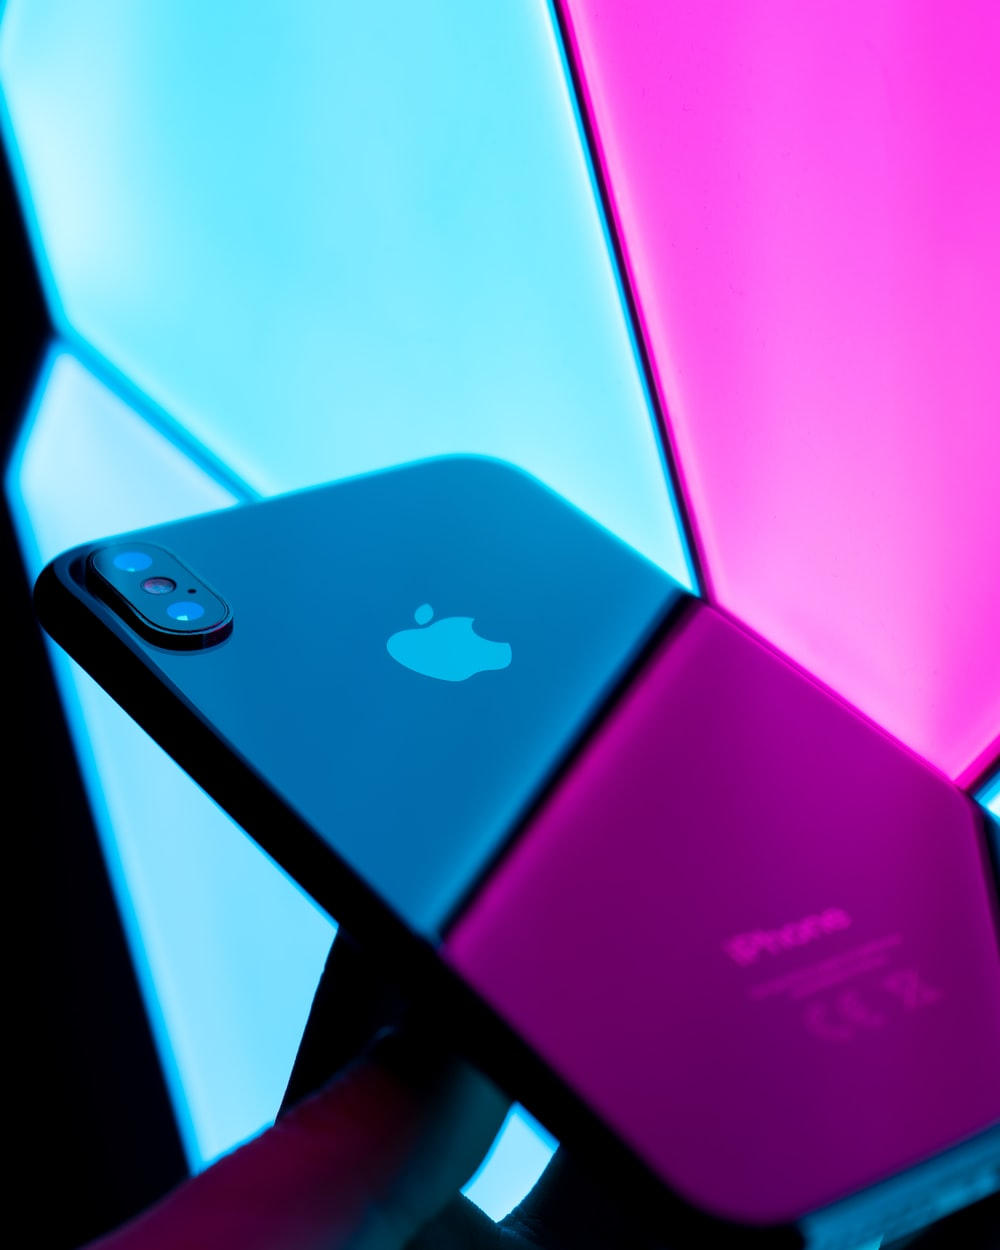 Ipod Pink Pictures Download Free Images On Unsplash